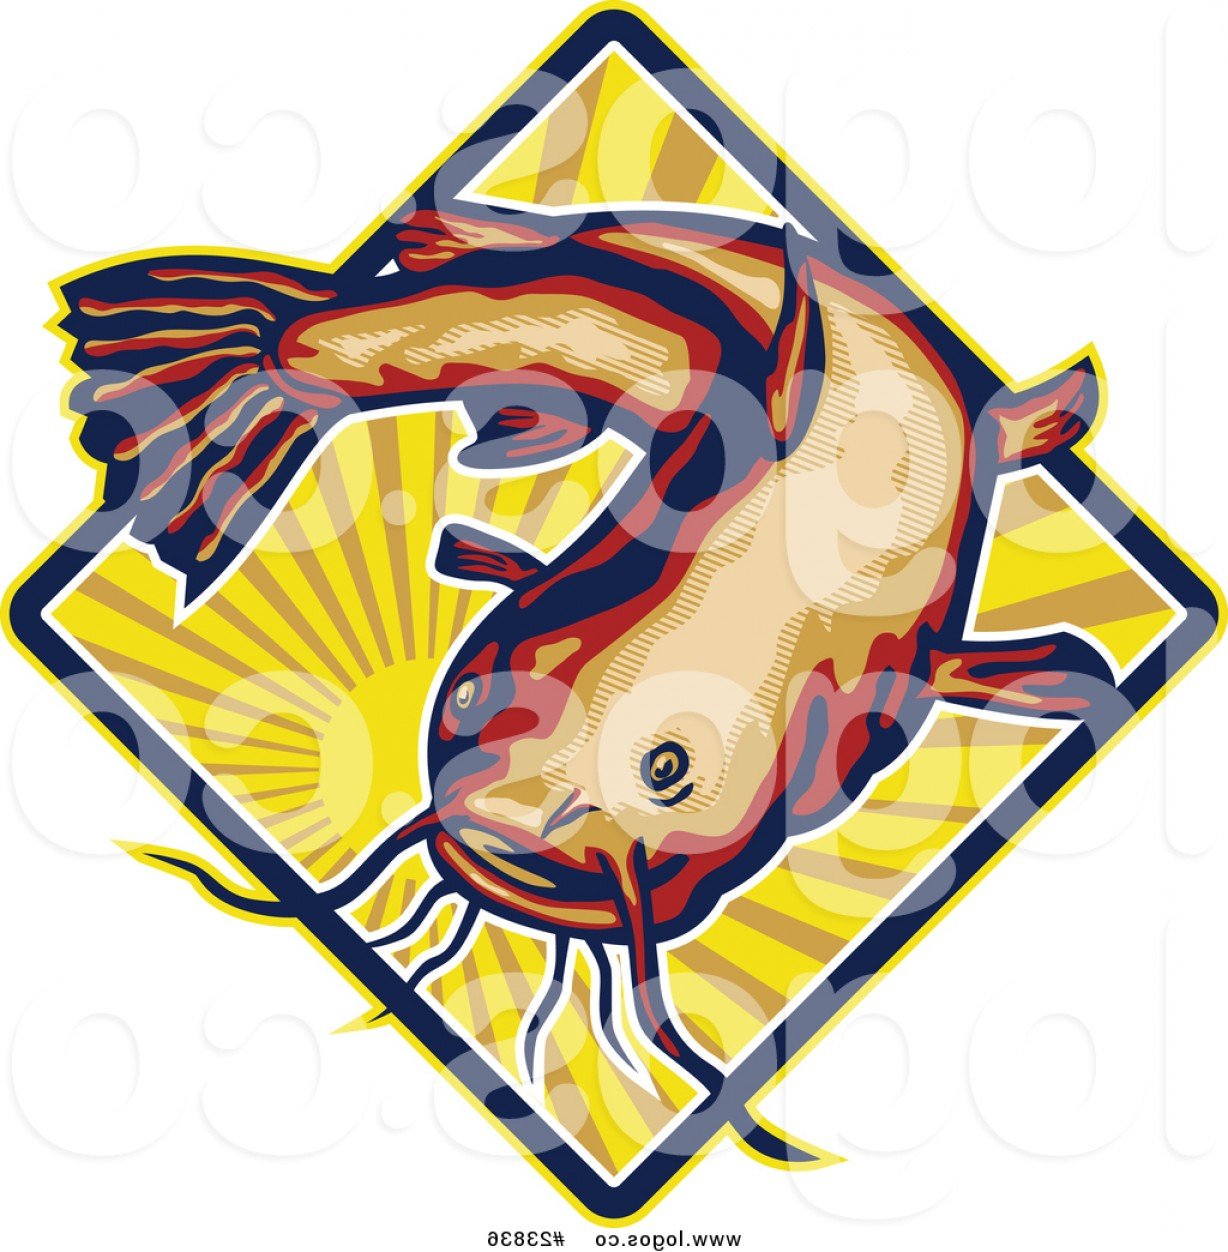 Royalty Free Vector Logo Of A Big Catfish Over A Sun With Rays By.